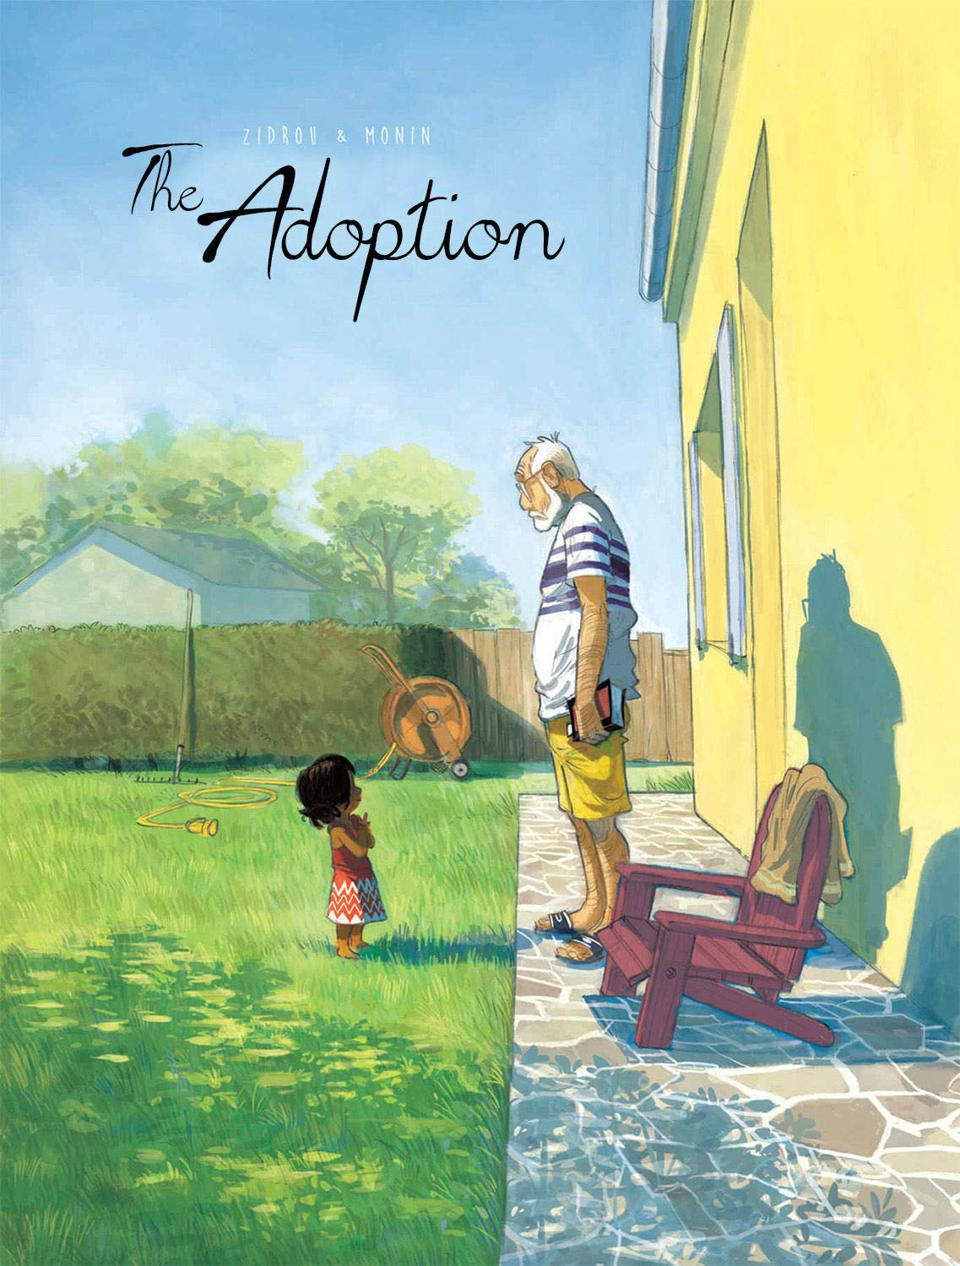 Cover of The Adoption by Zidron and Monin, Magnetic Press, graphic novel comic